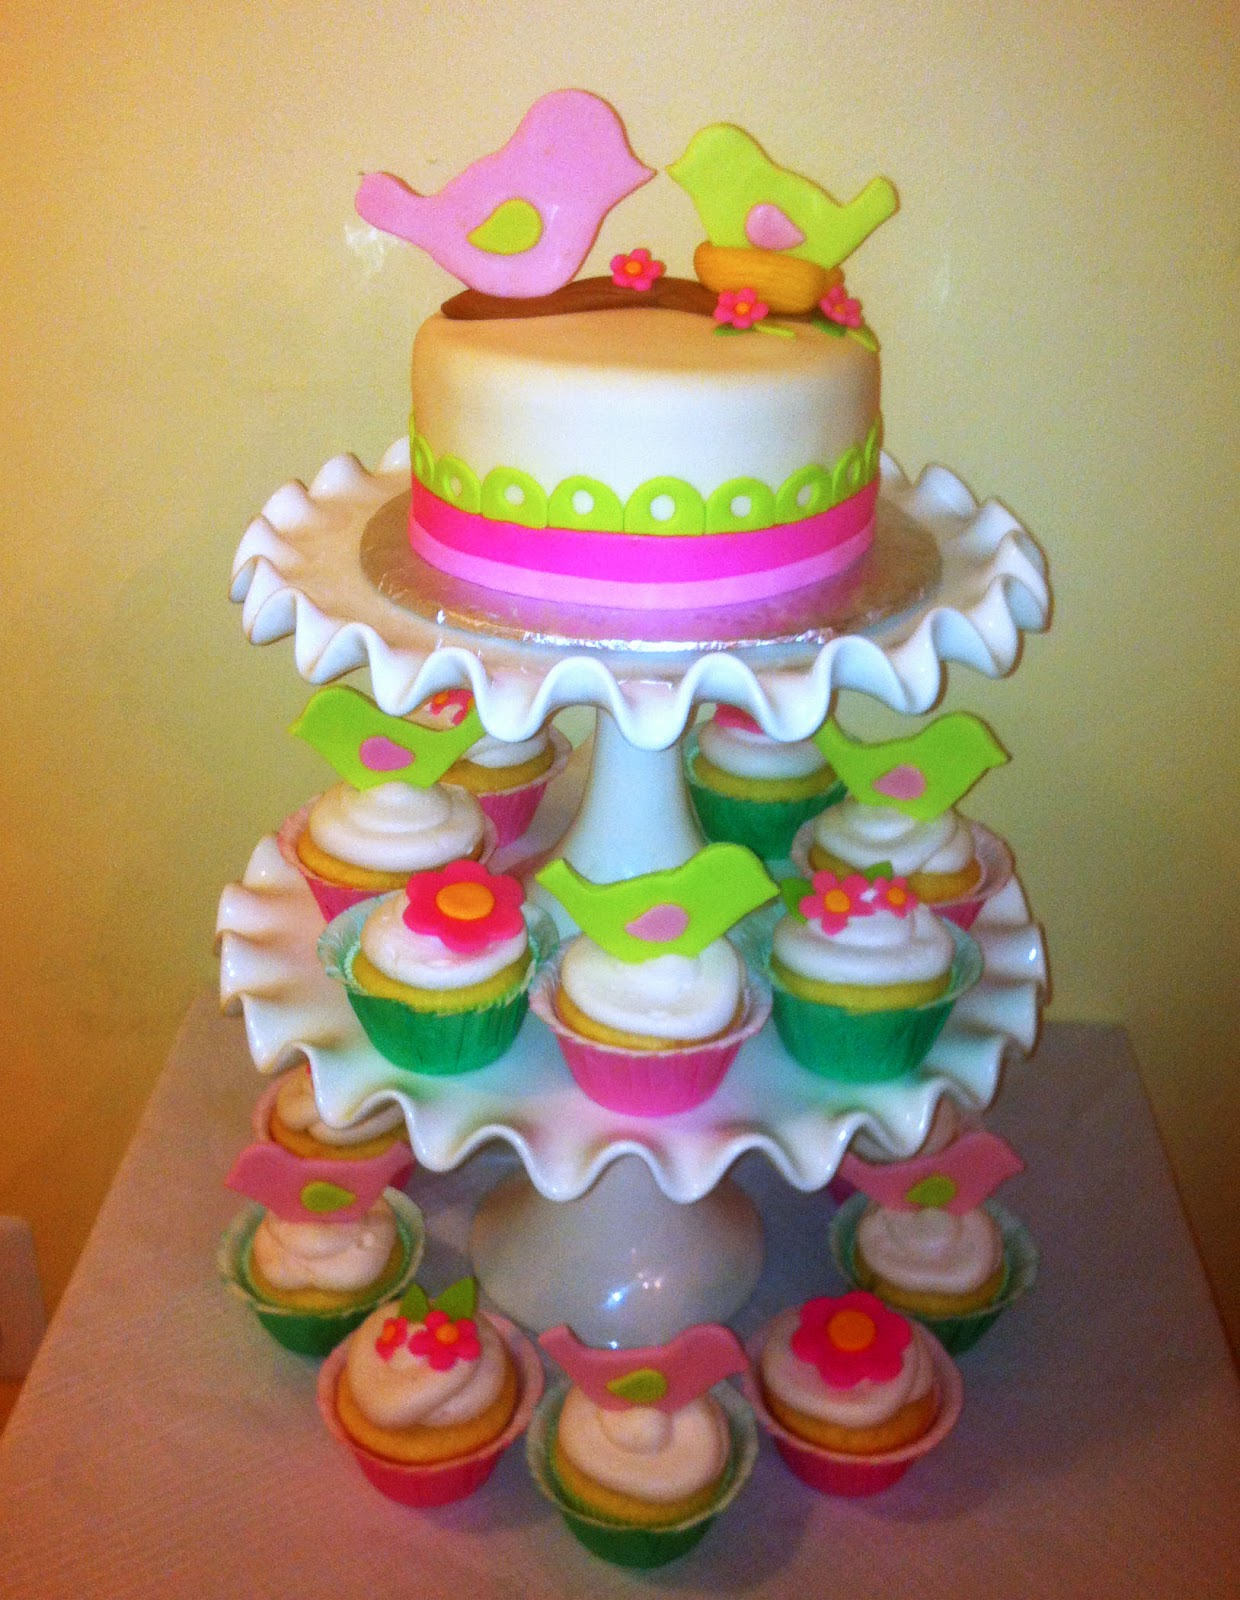 Cake Decorating Classes Near Worcester Ma : Baby Shower Cakes: Baby Shower Cakes Ri